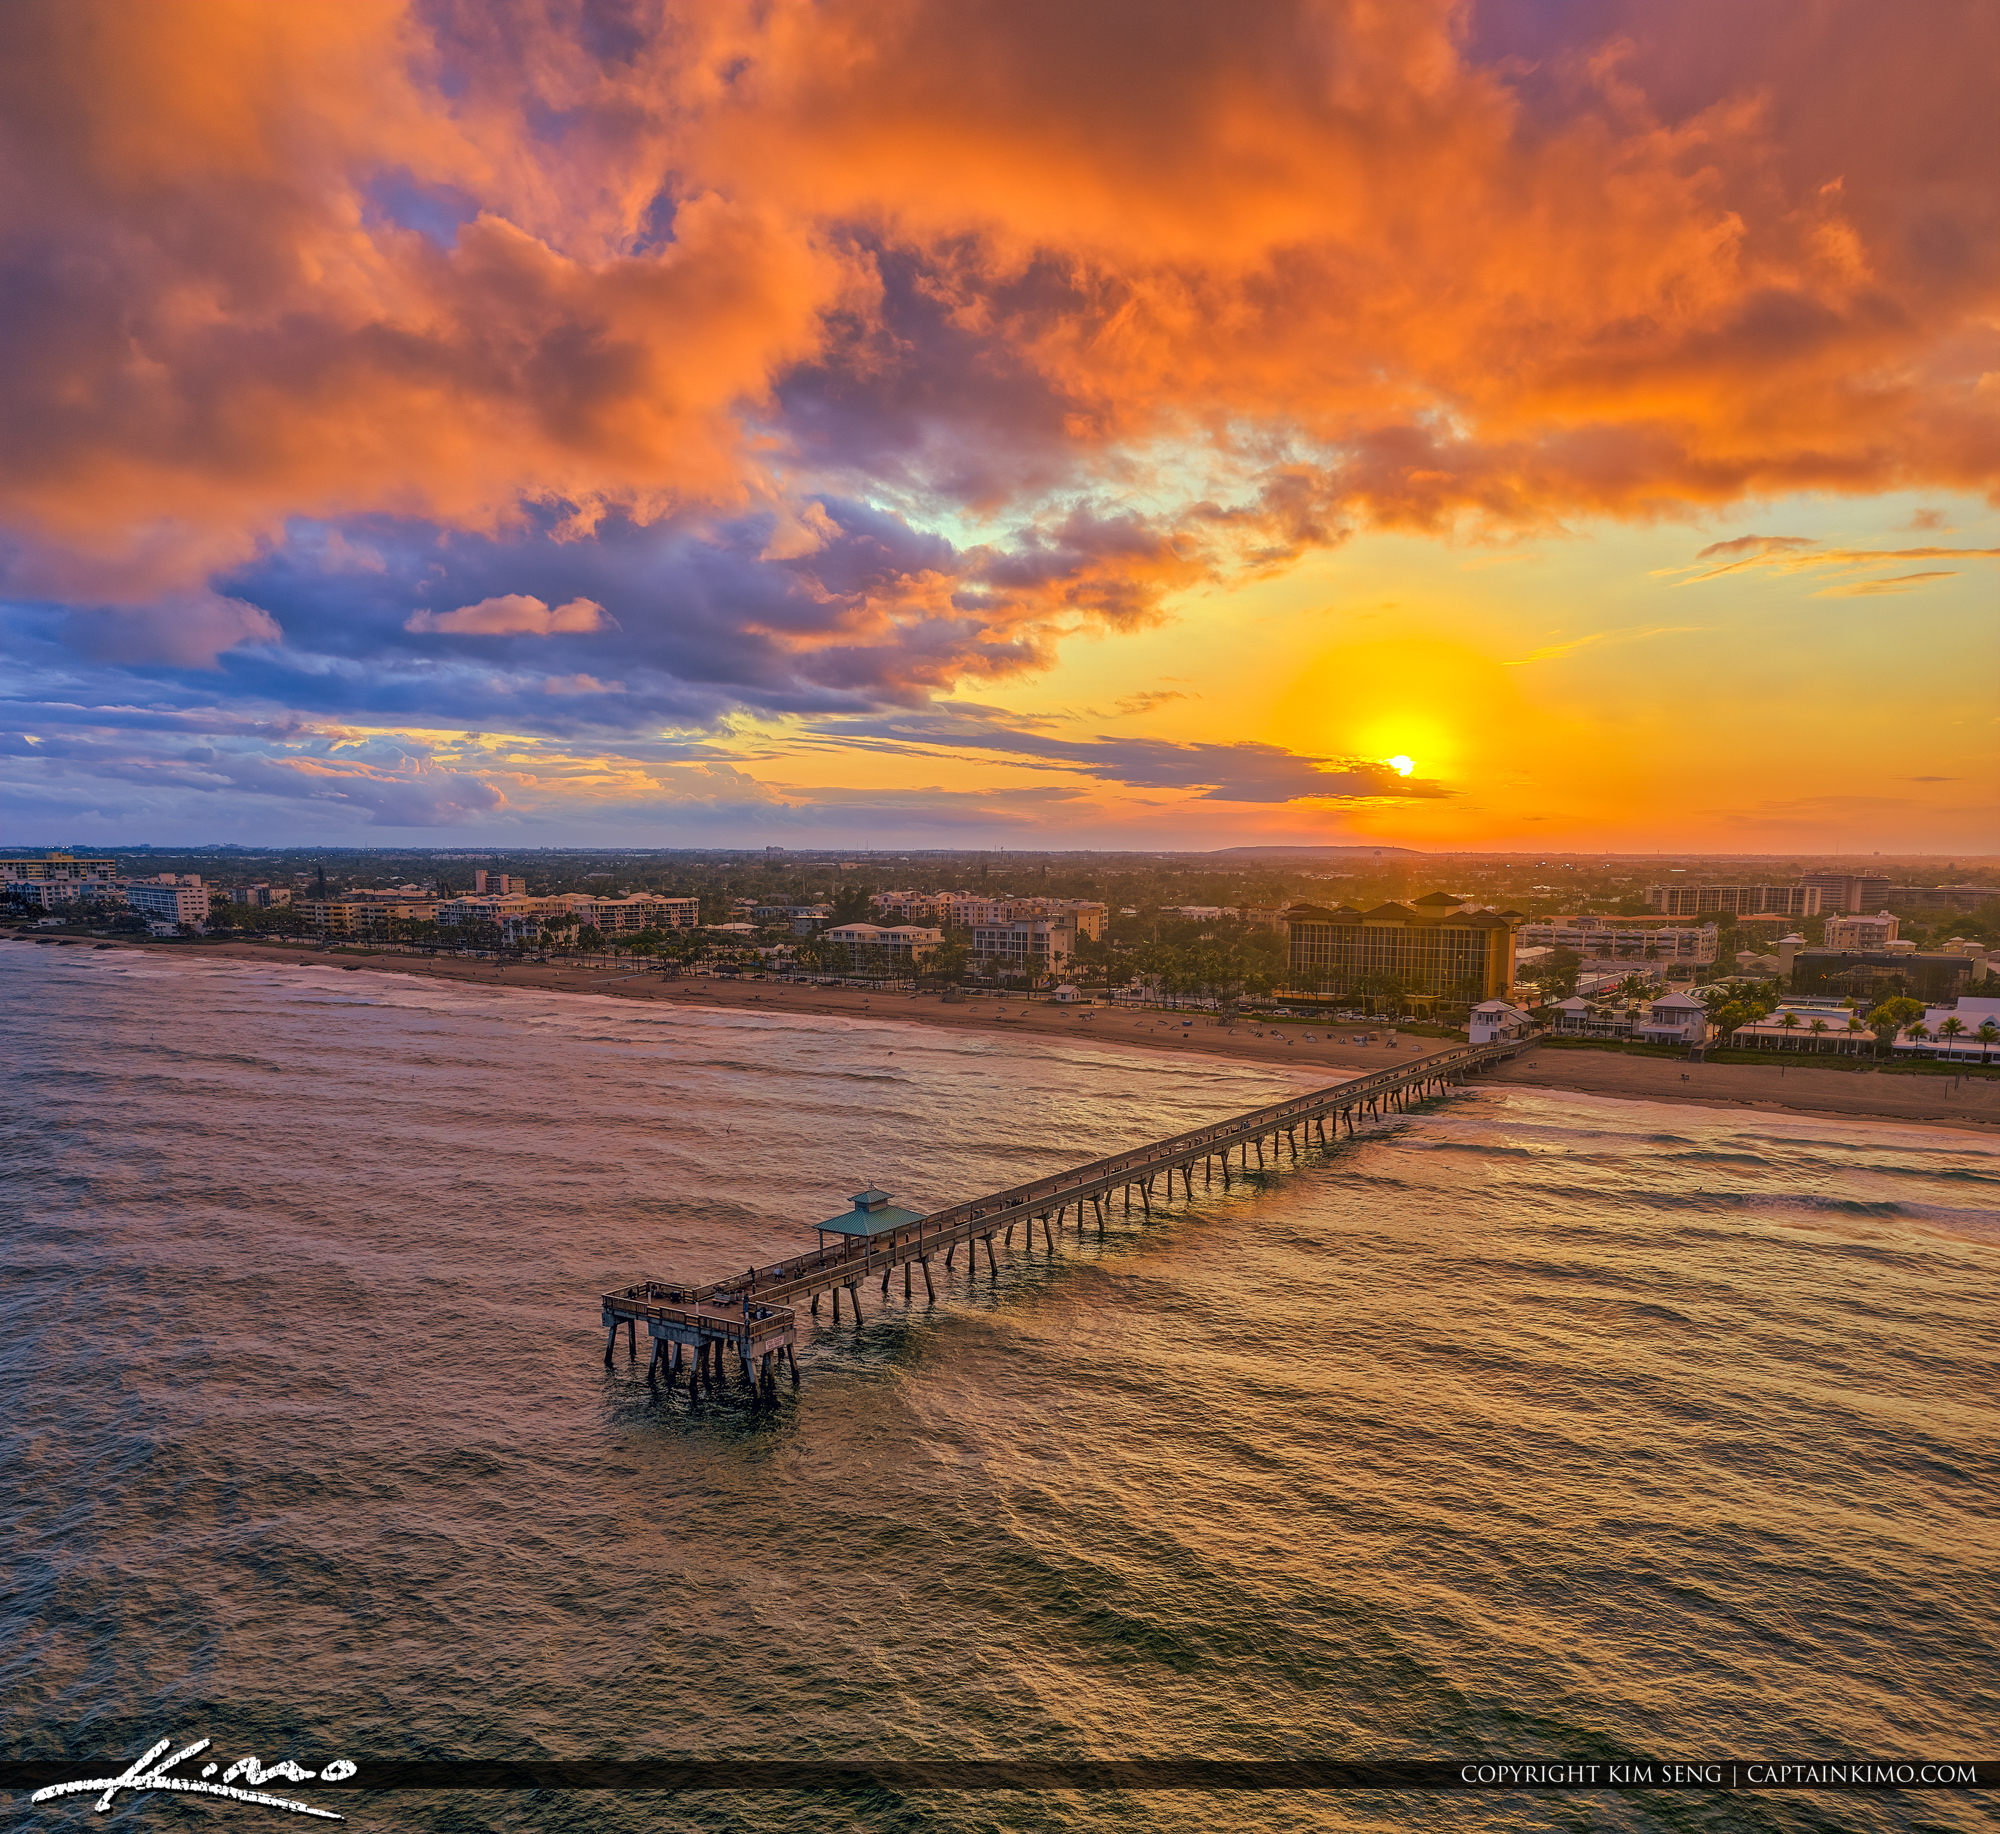 Deerfield Beach International Fishing Pier Sunset Aerial Photogr